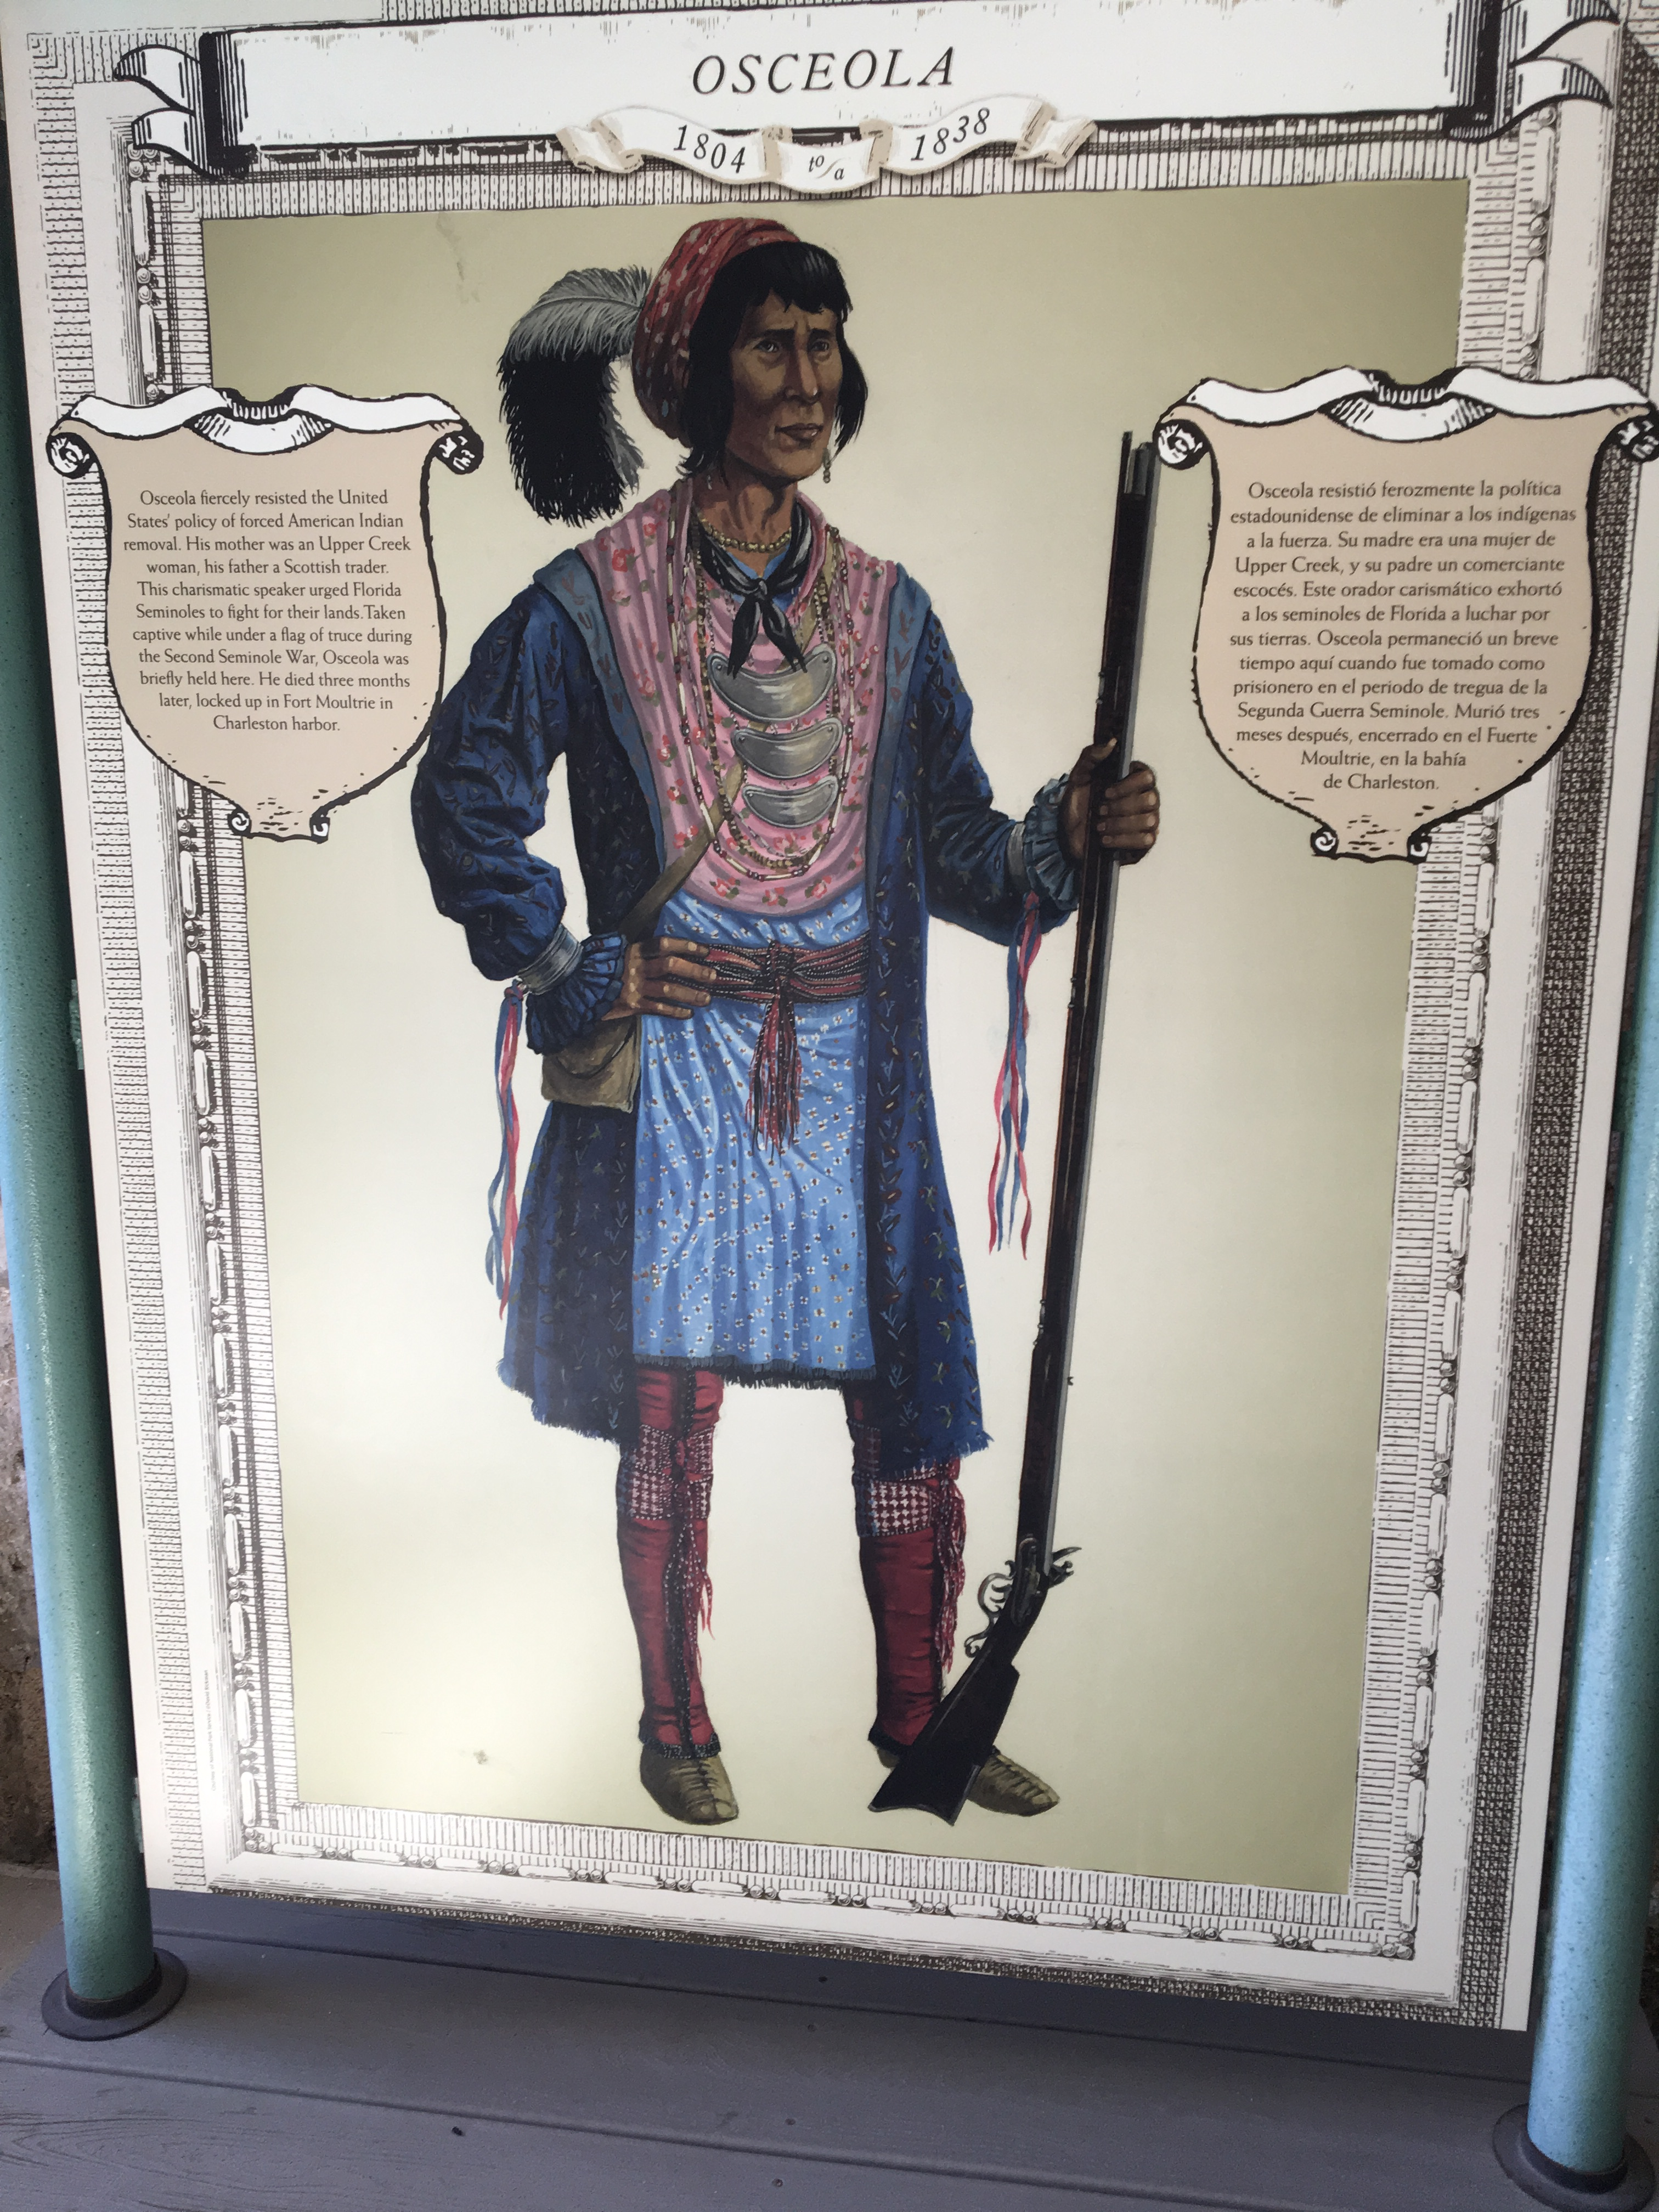 Image of NPS exhibit profile on Osceola, showing the Seminole military leader standing with a rifle.